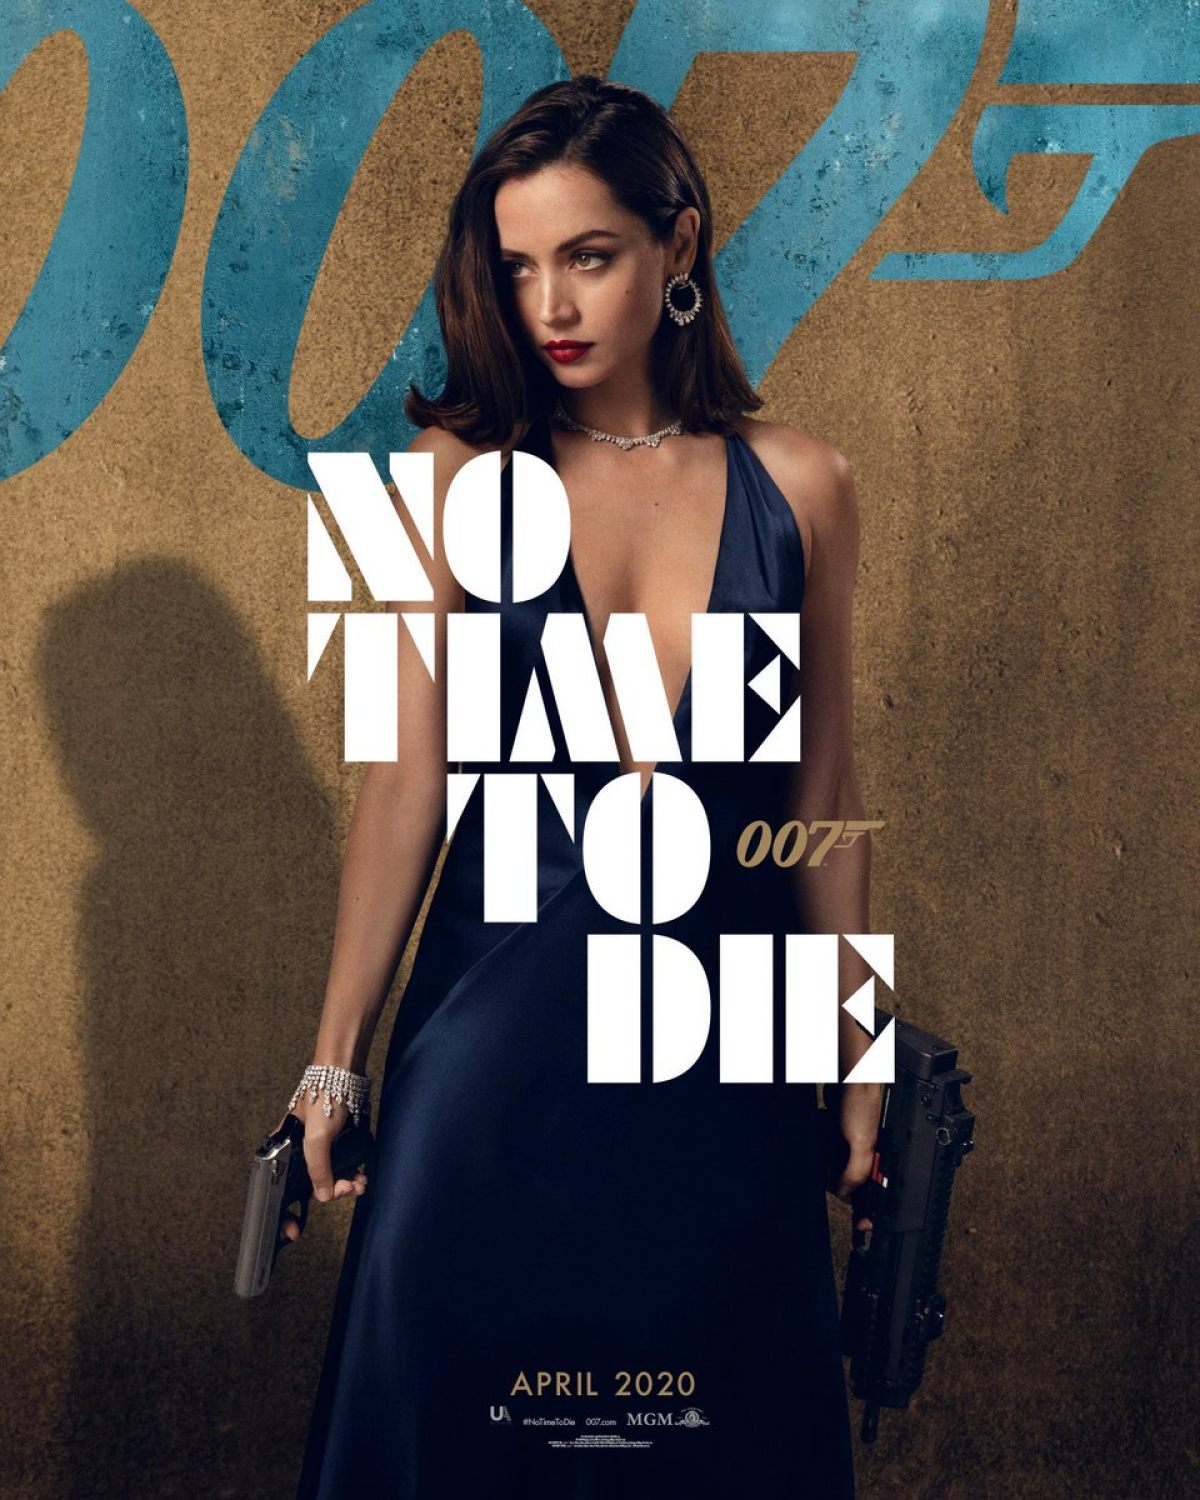 When is James Bond: No Time To Die released in the UK?